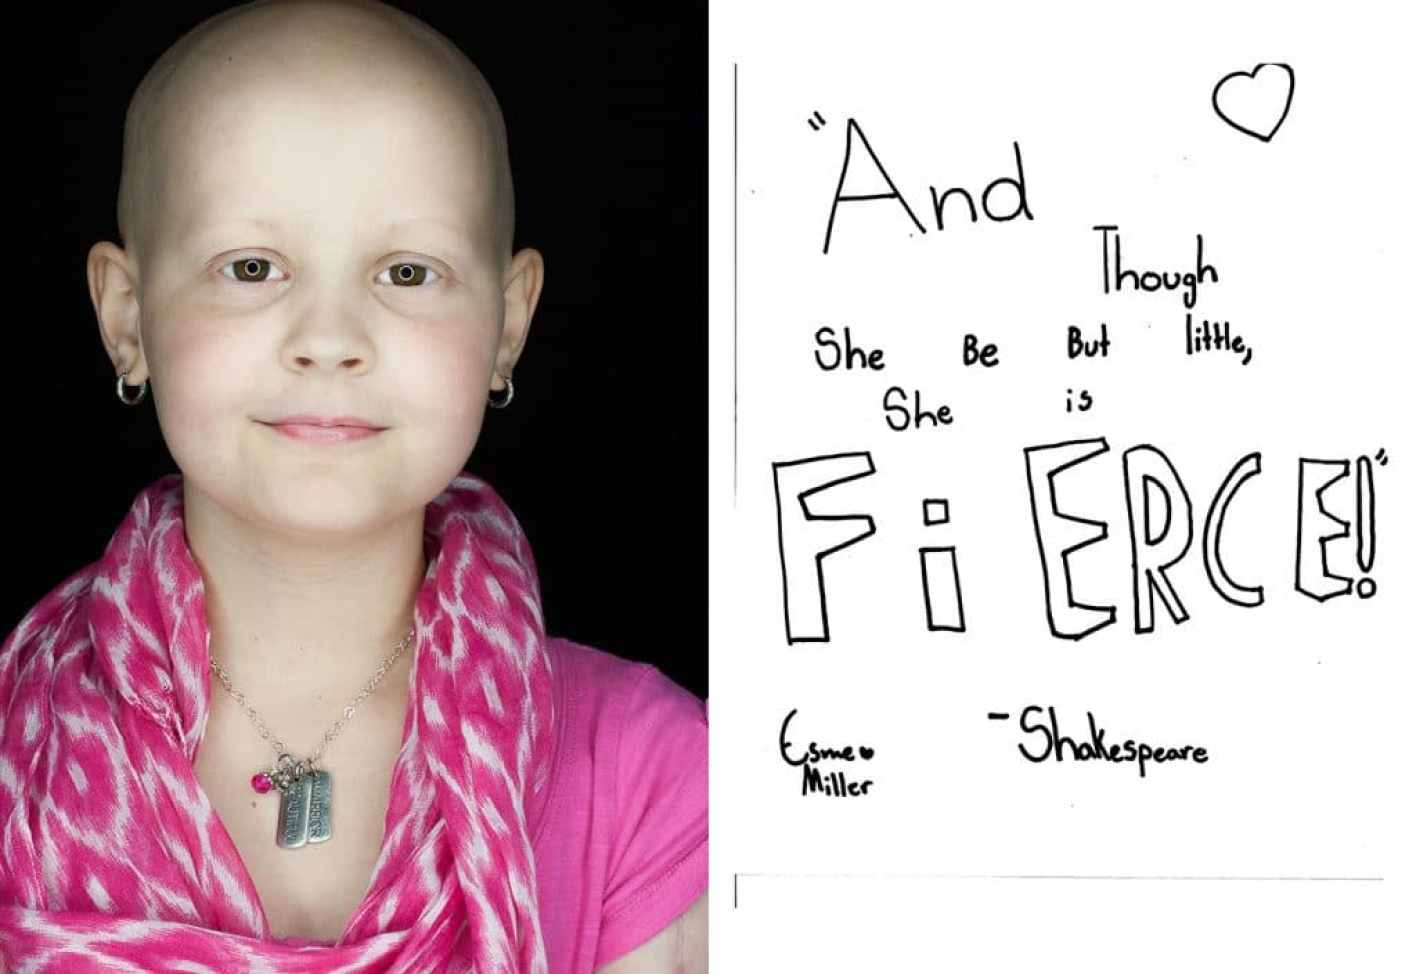 Peter Doyle's Childhood Cancer Portraits - Pursuing Personal Photographic Projects